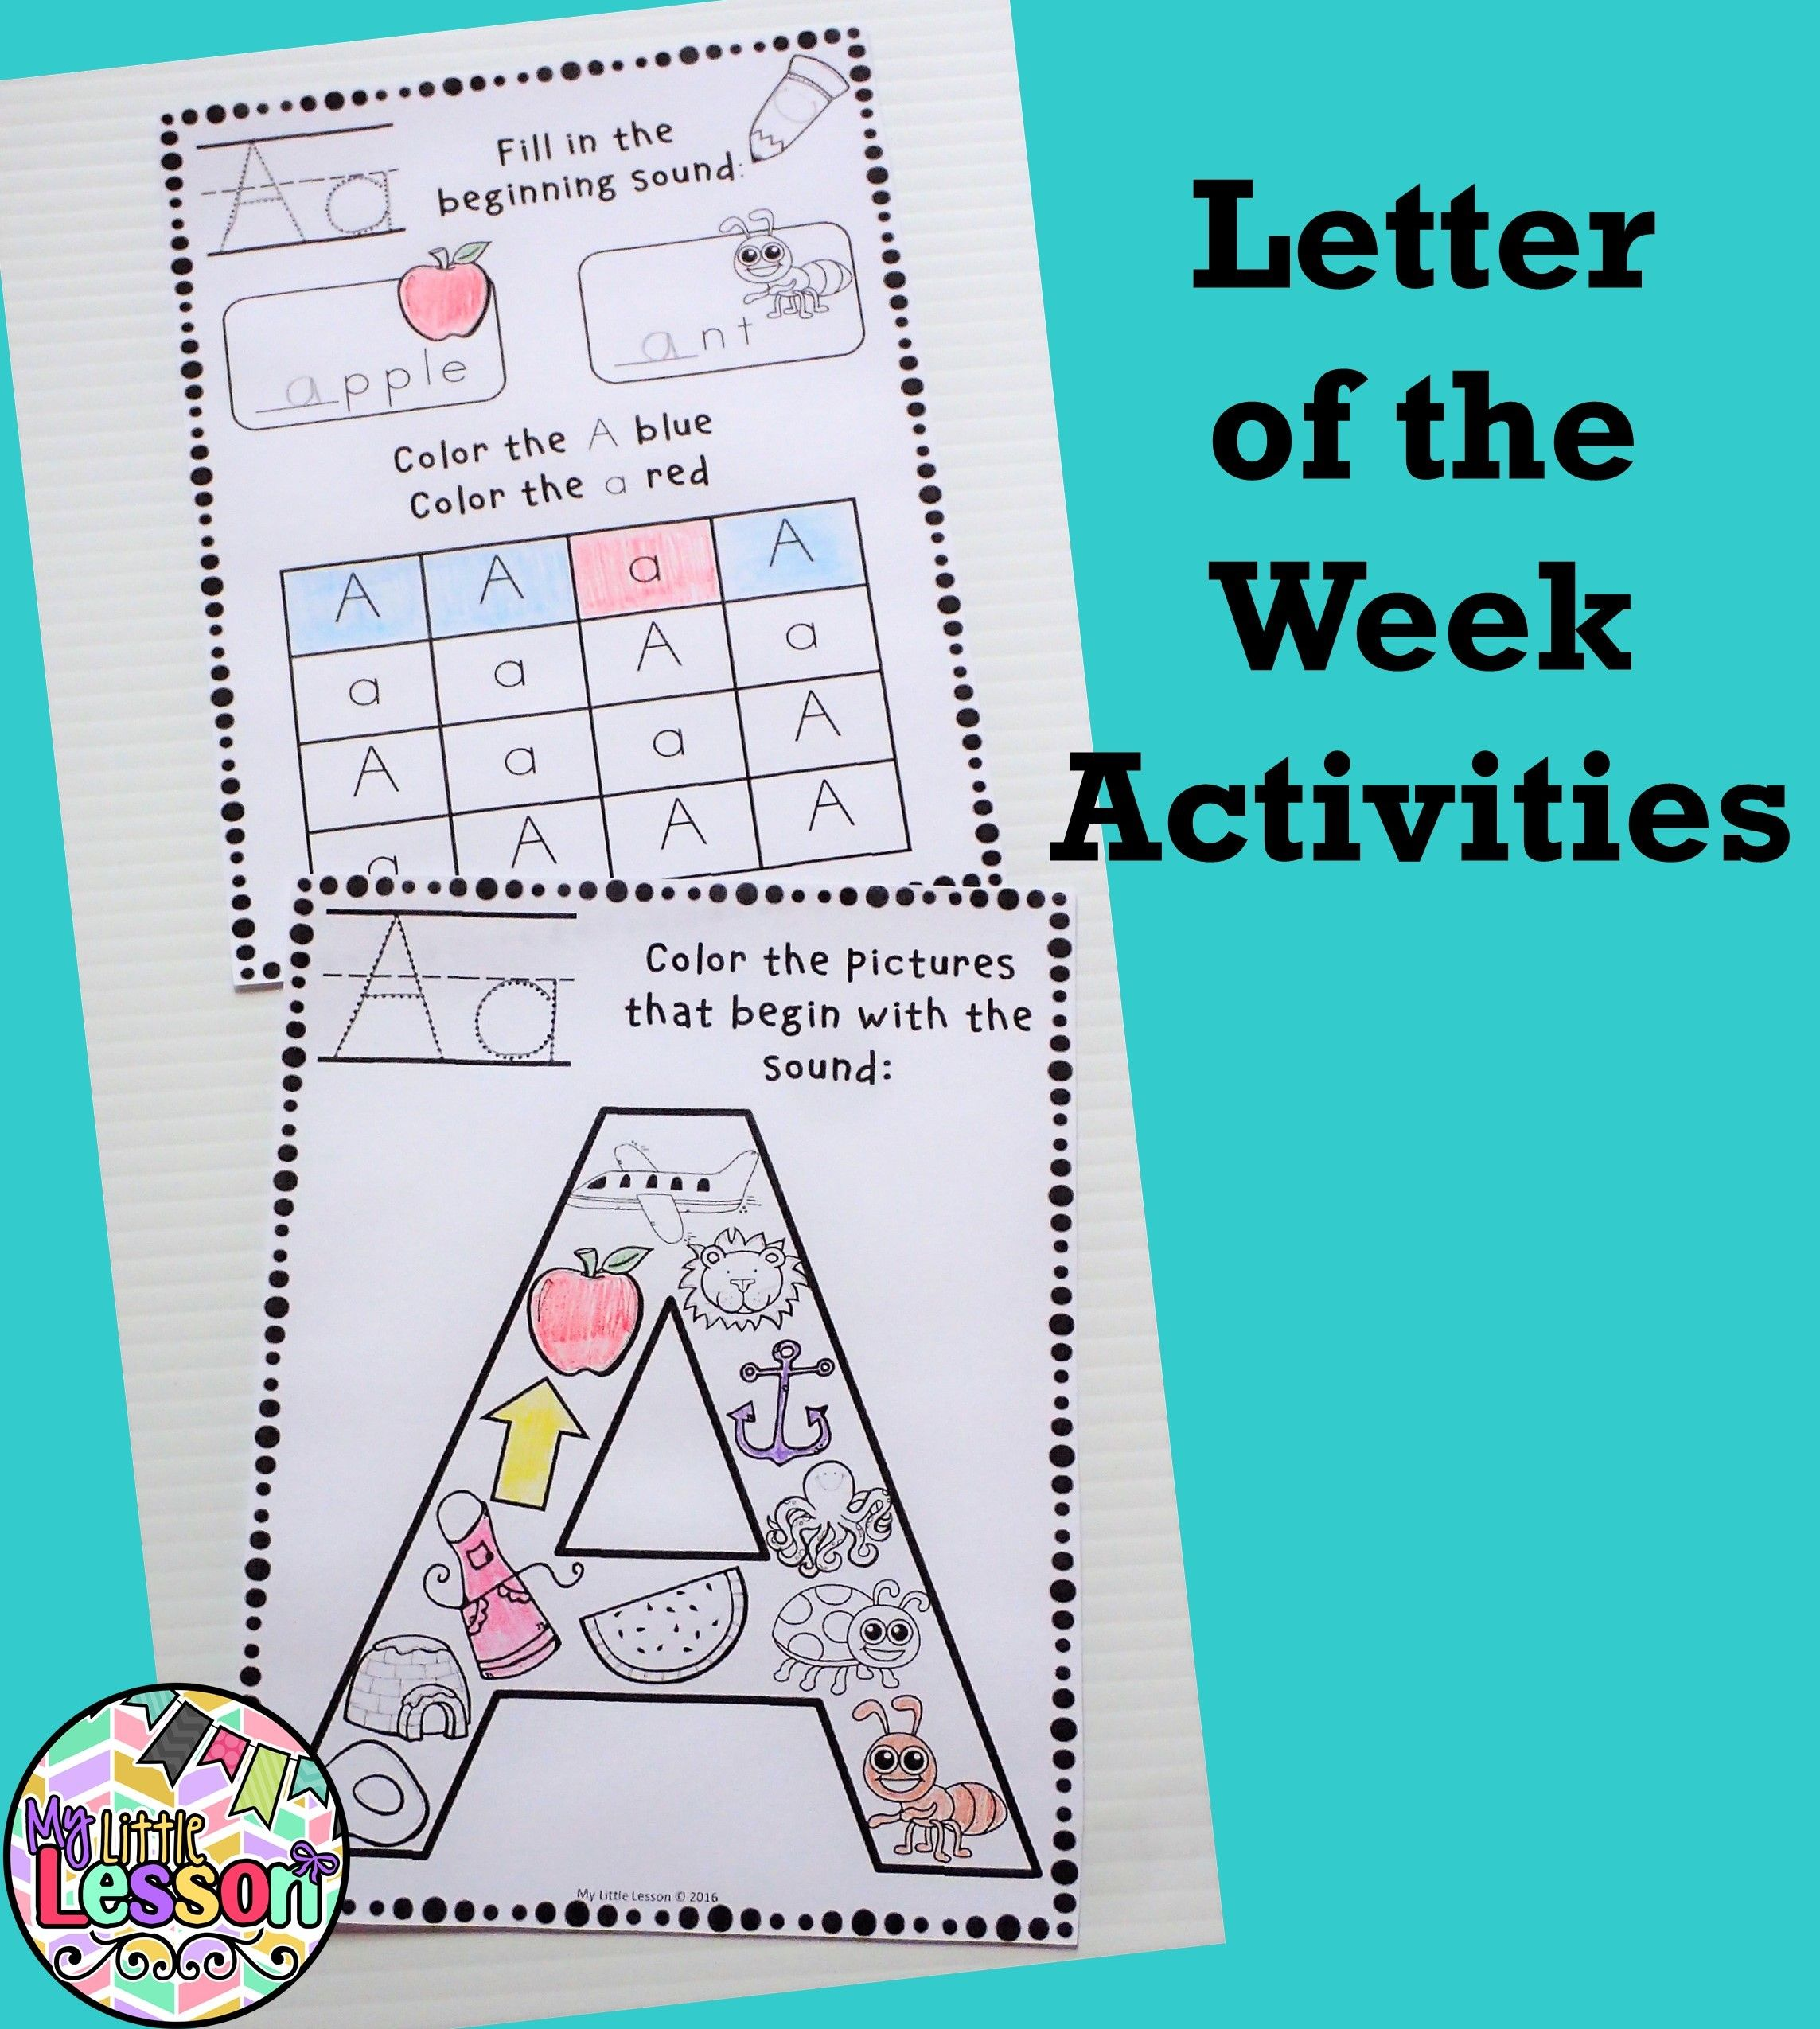 Letter of the Week Worksheets and Activities | Student-centered ...